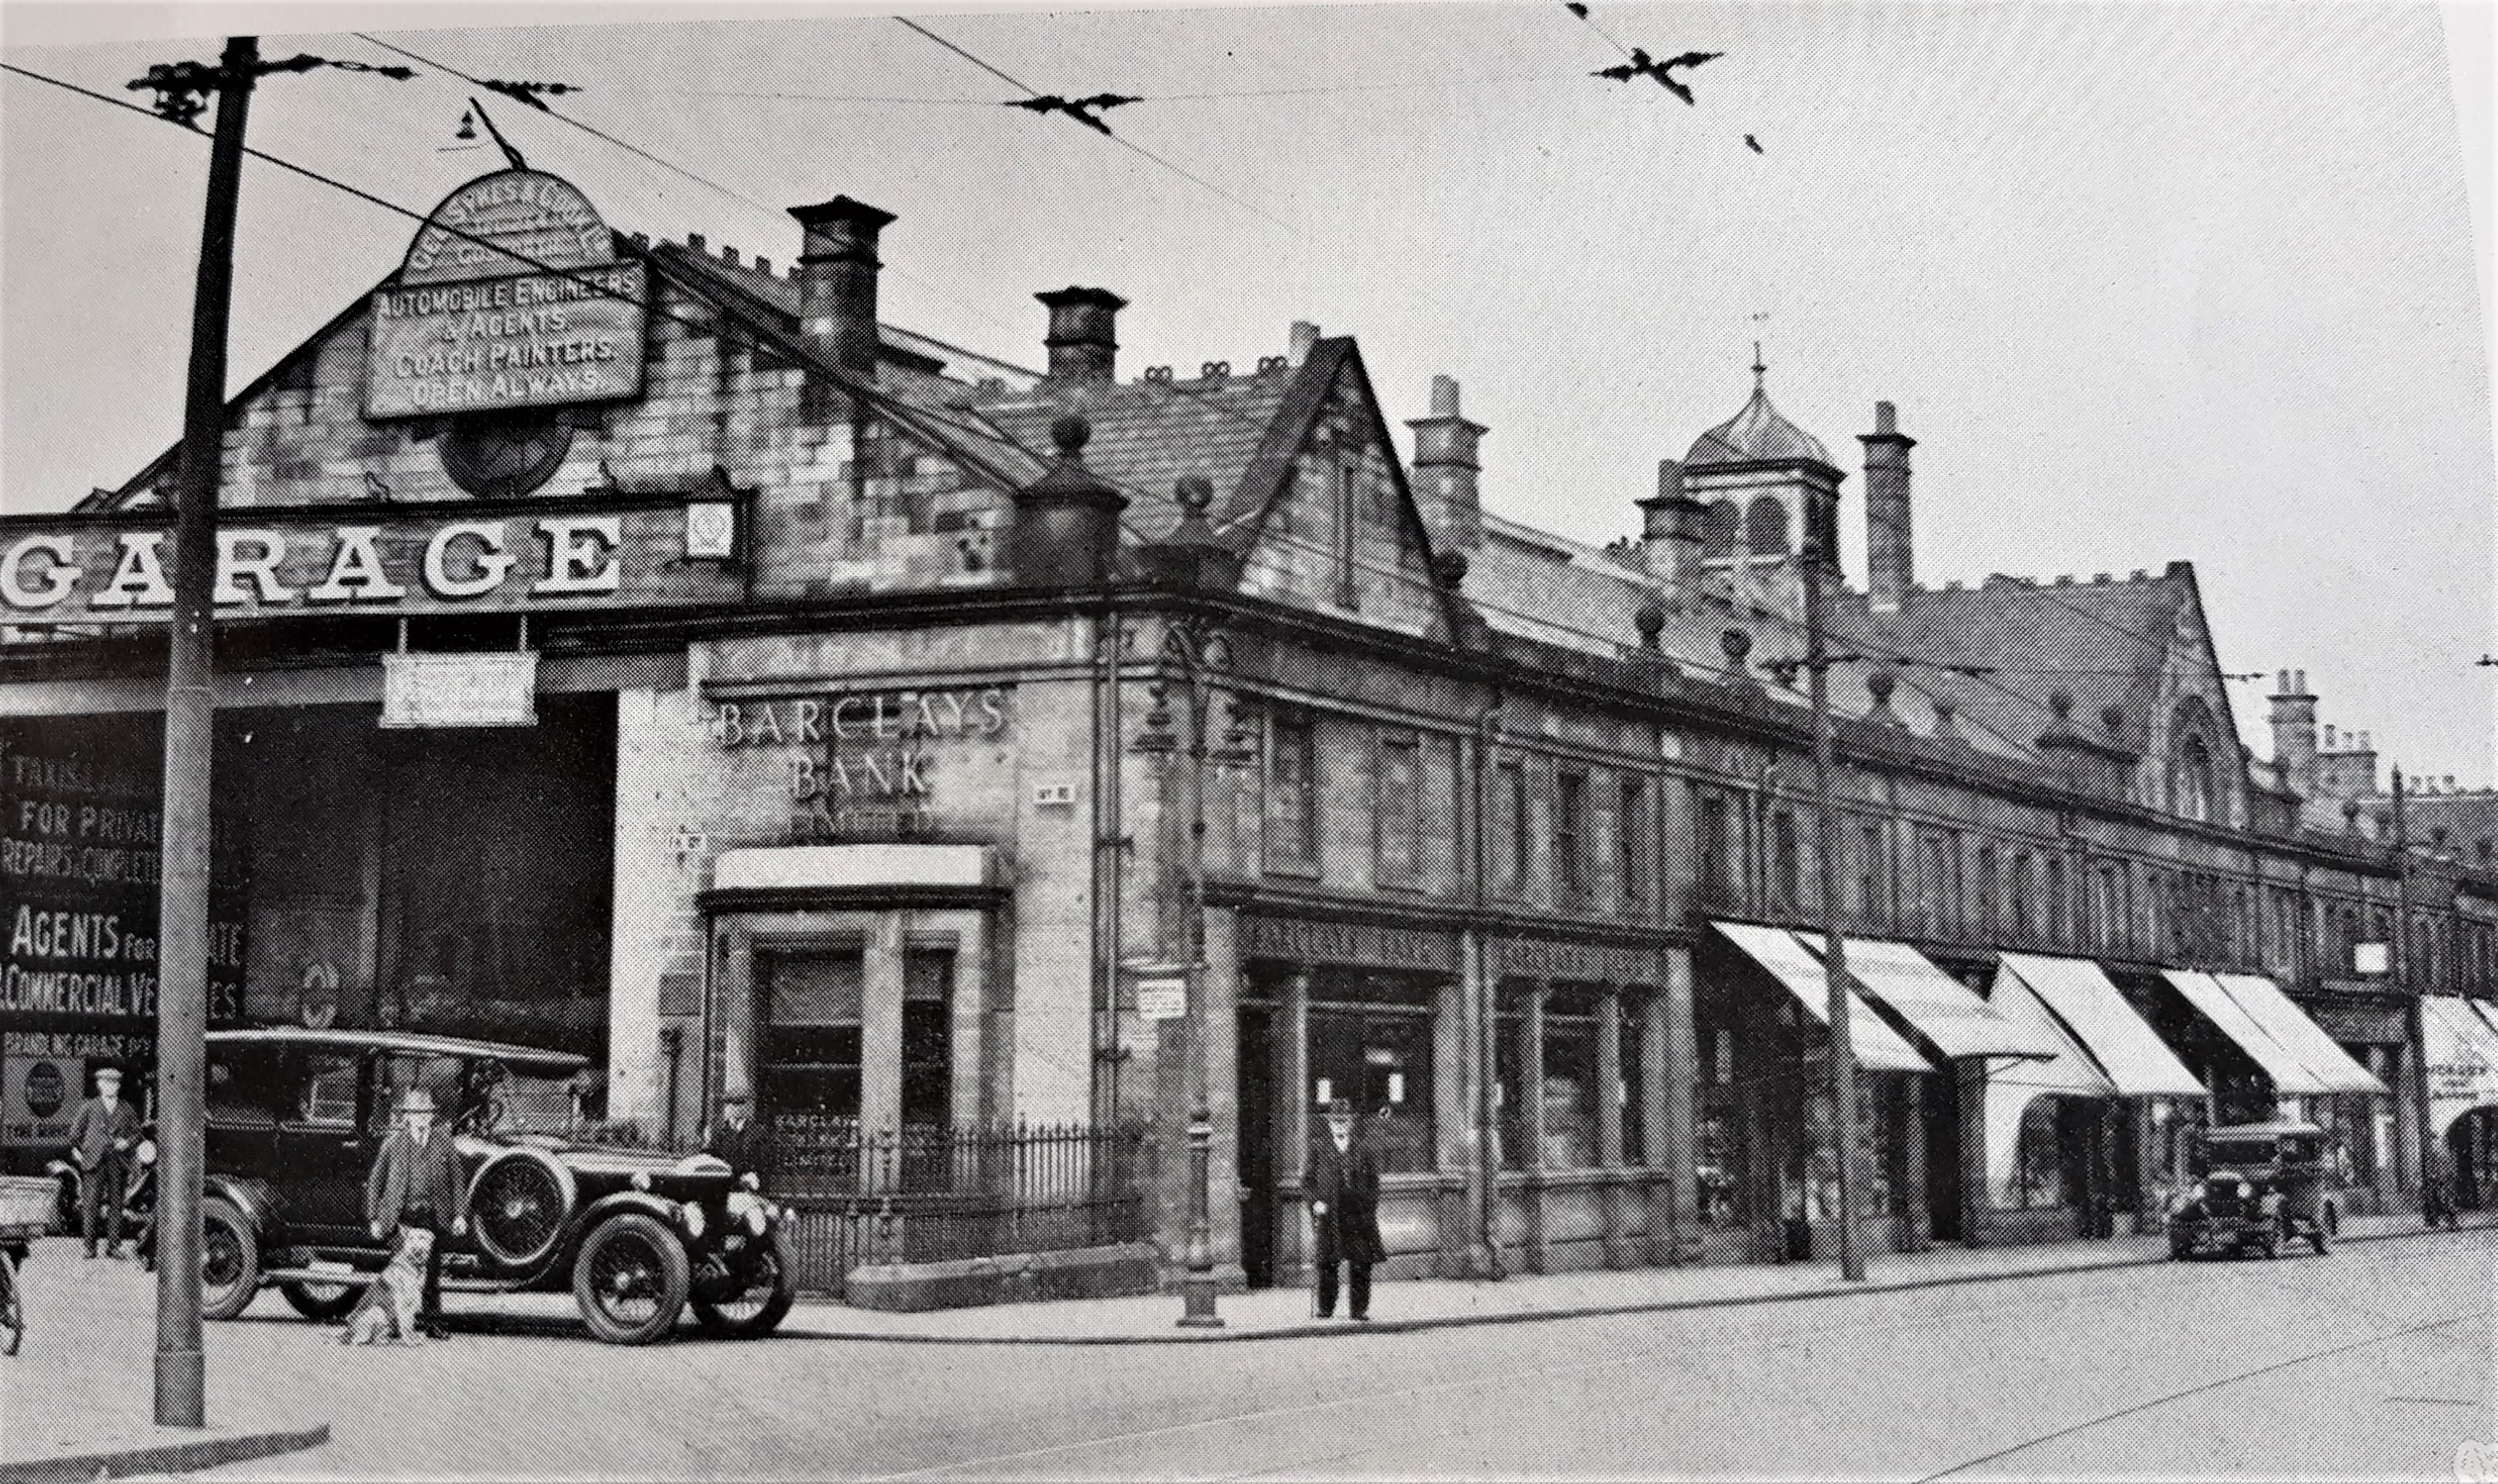 Old Gosforth photograph of Gee Sykes & Cook ltd. Trading from the tramway stables building on Gosforth High Street.